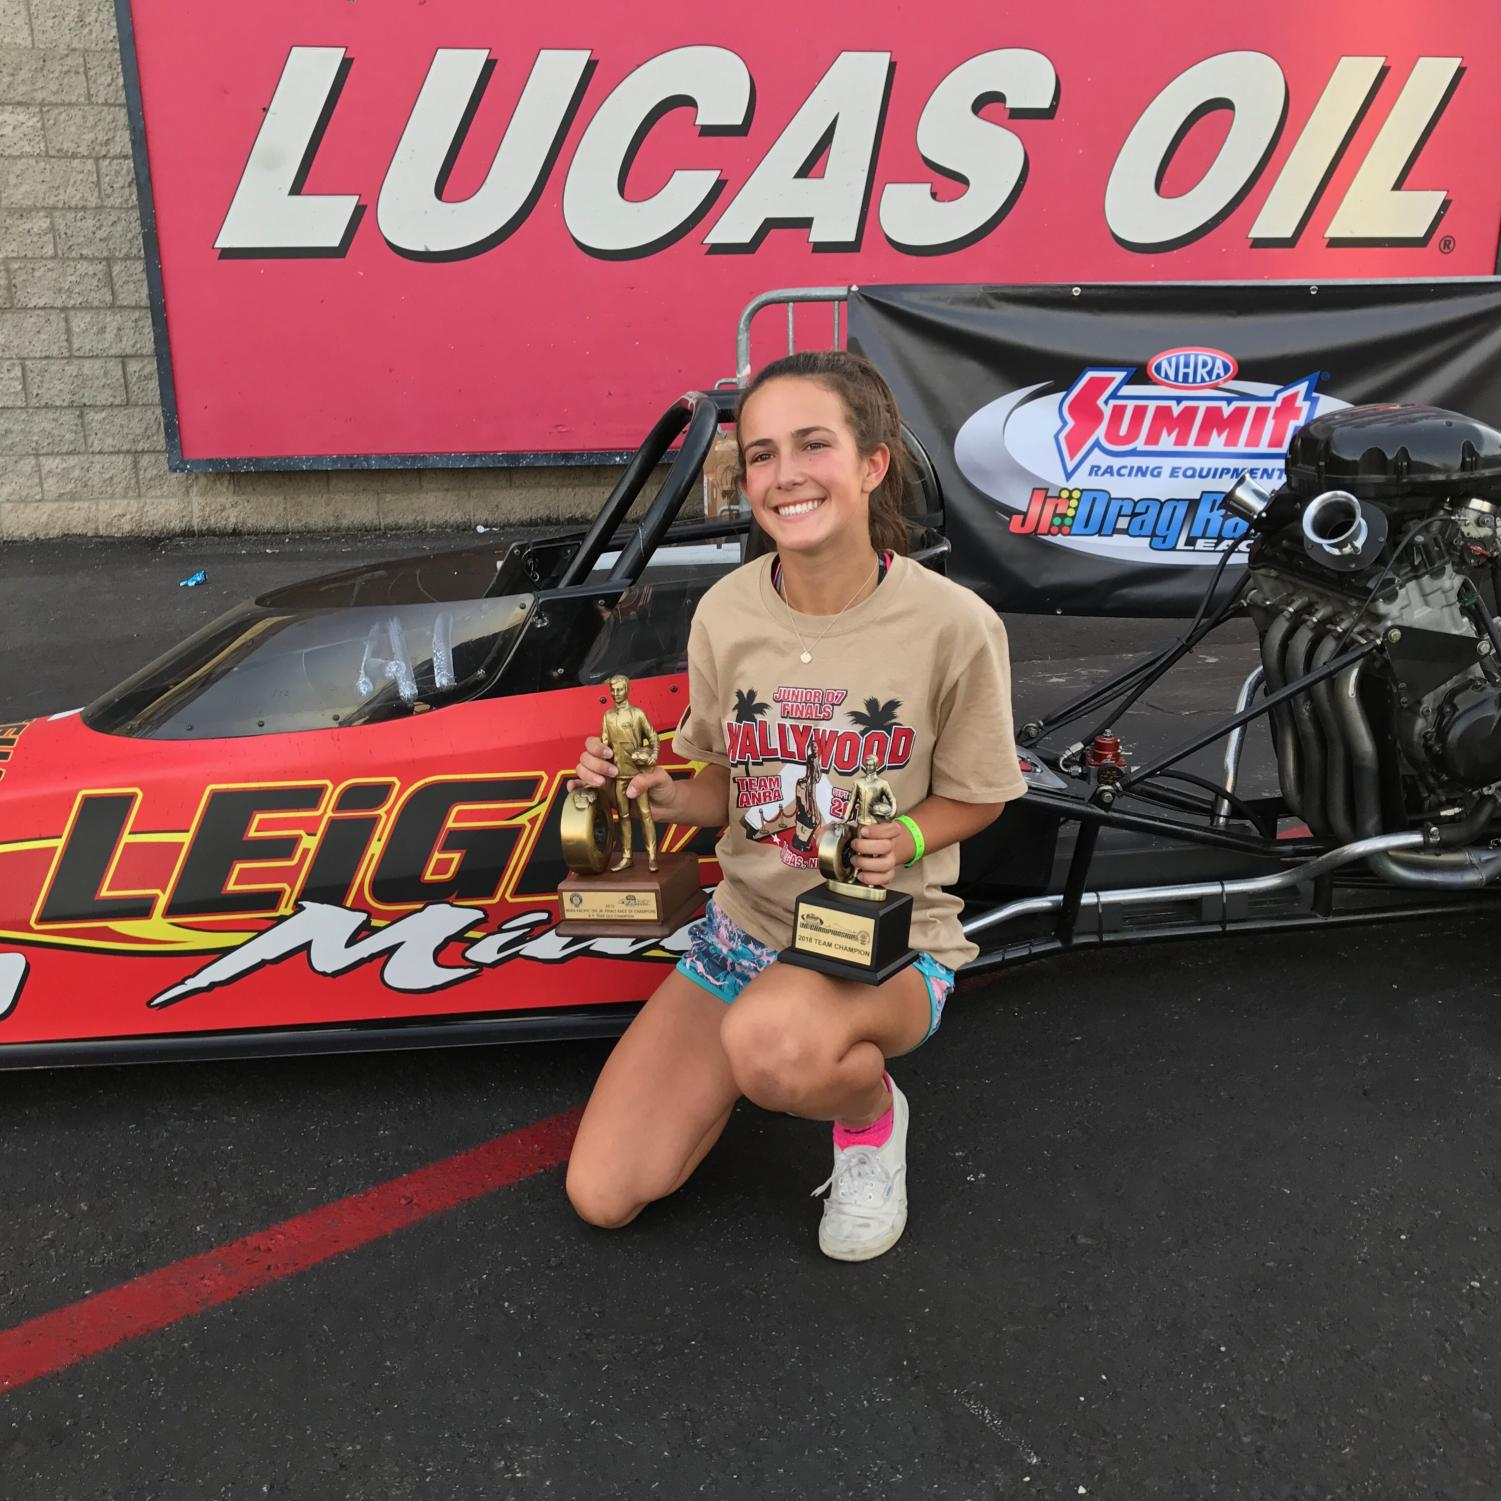 Sophomore Leigha Miller holds her trophies at the Jr. Drag Racing League. She has been drag racing since she was young as a way to bind with her dad.